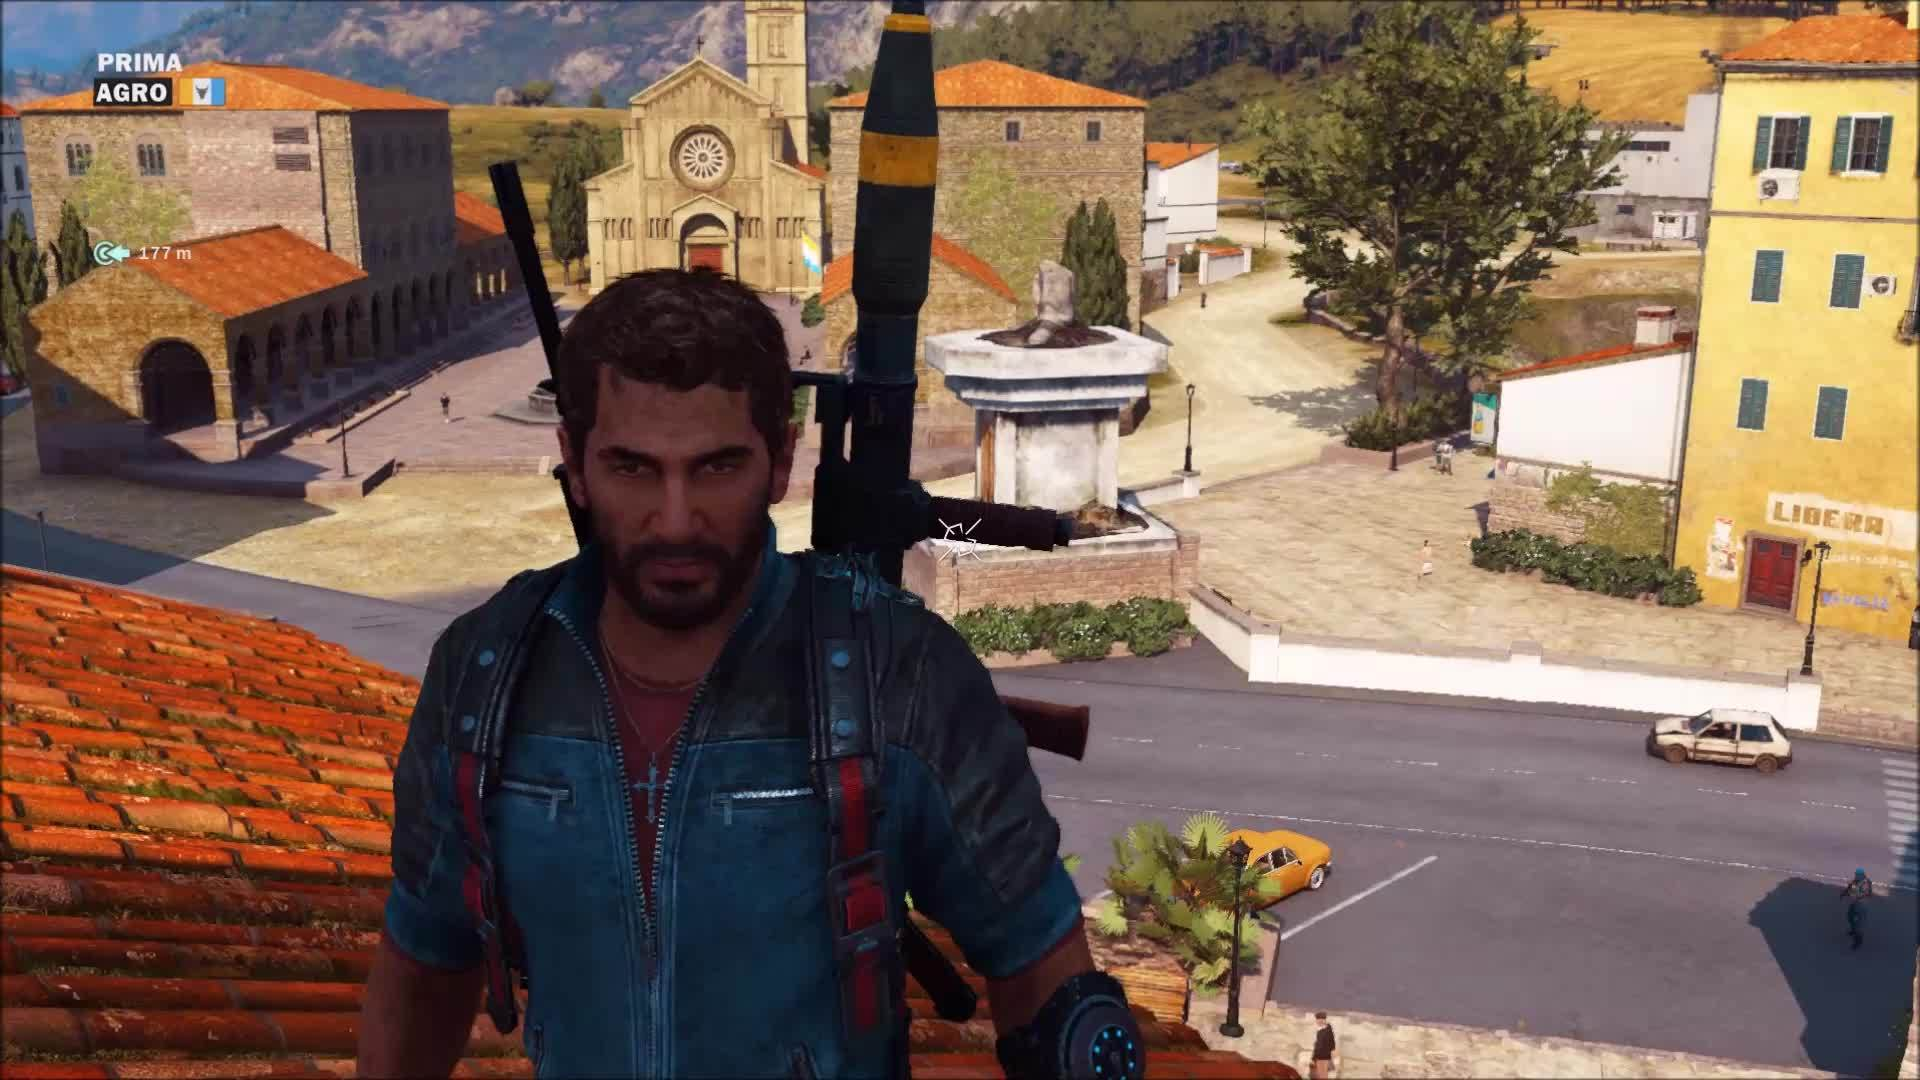 justcause, Agro Flythrough 2 GIFs